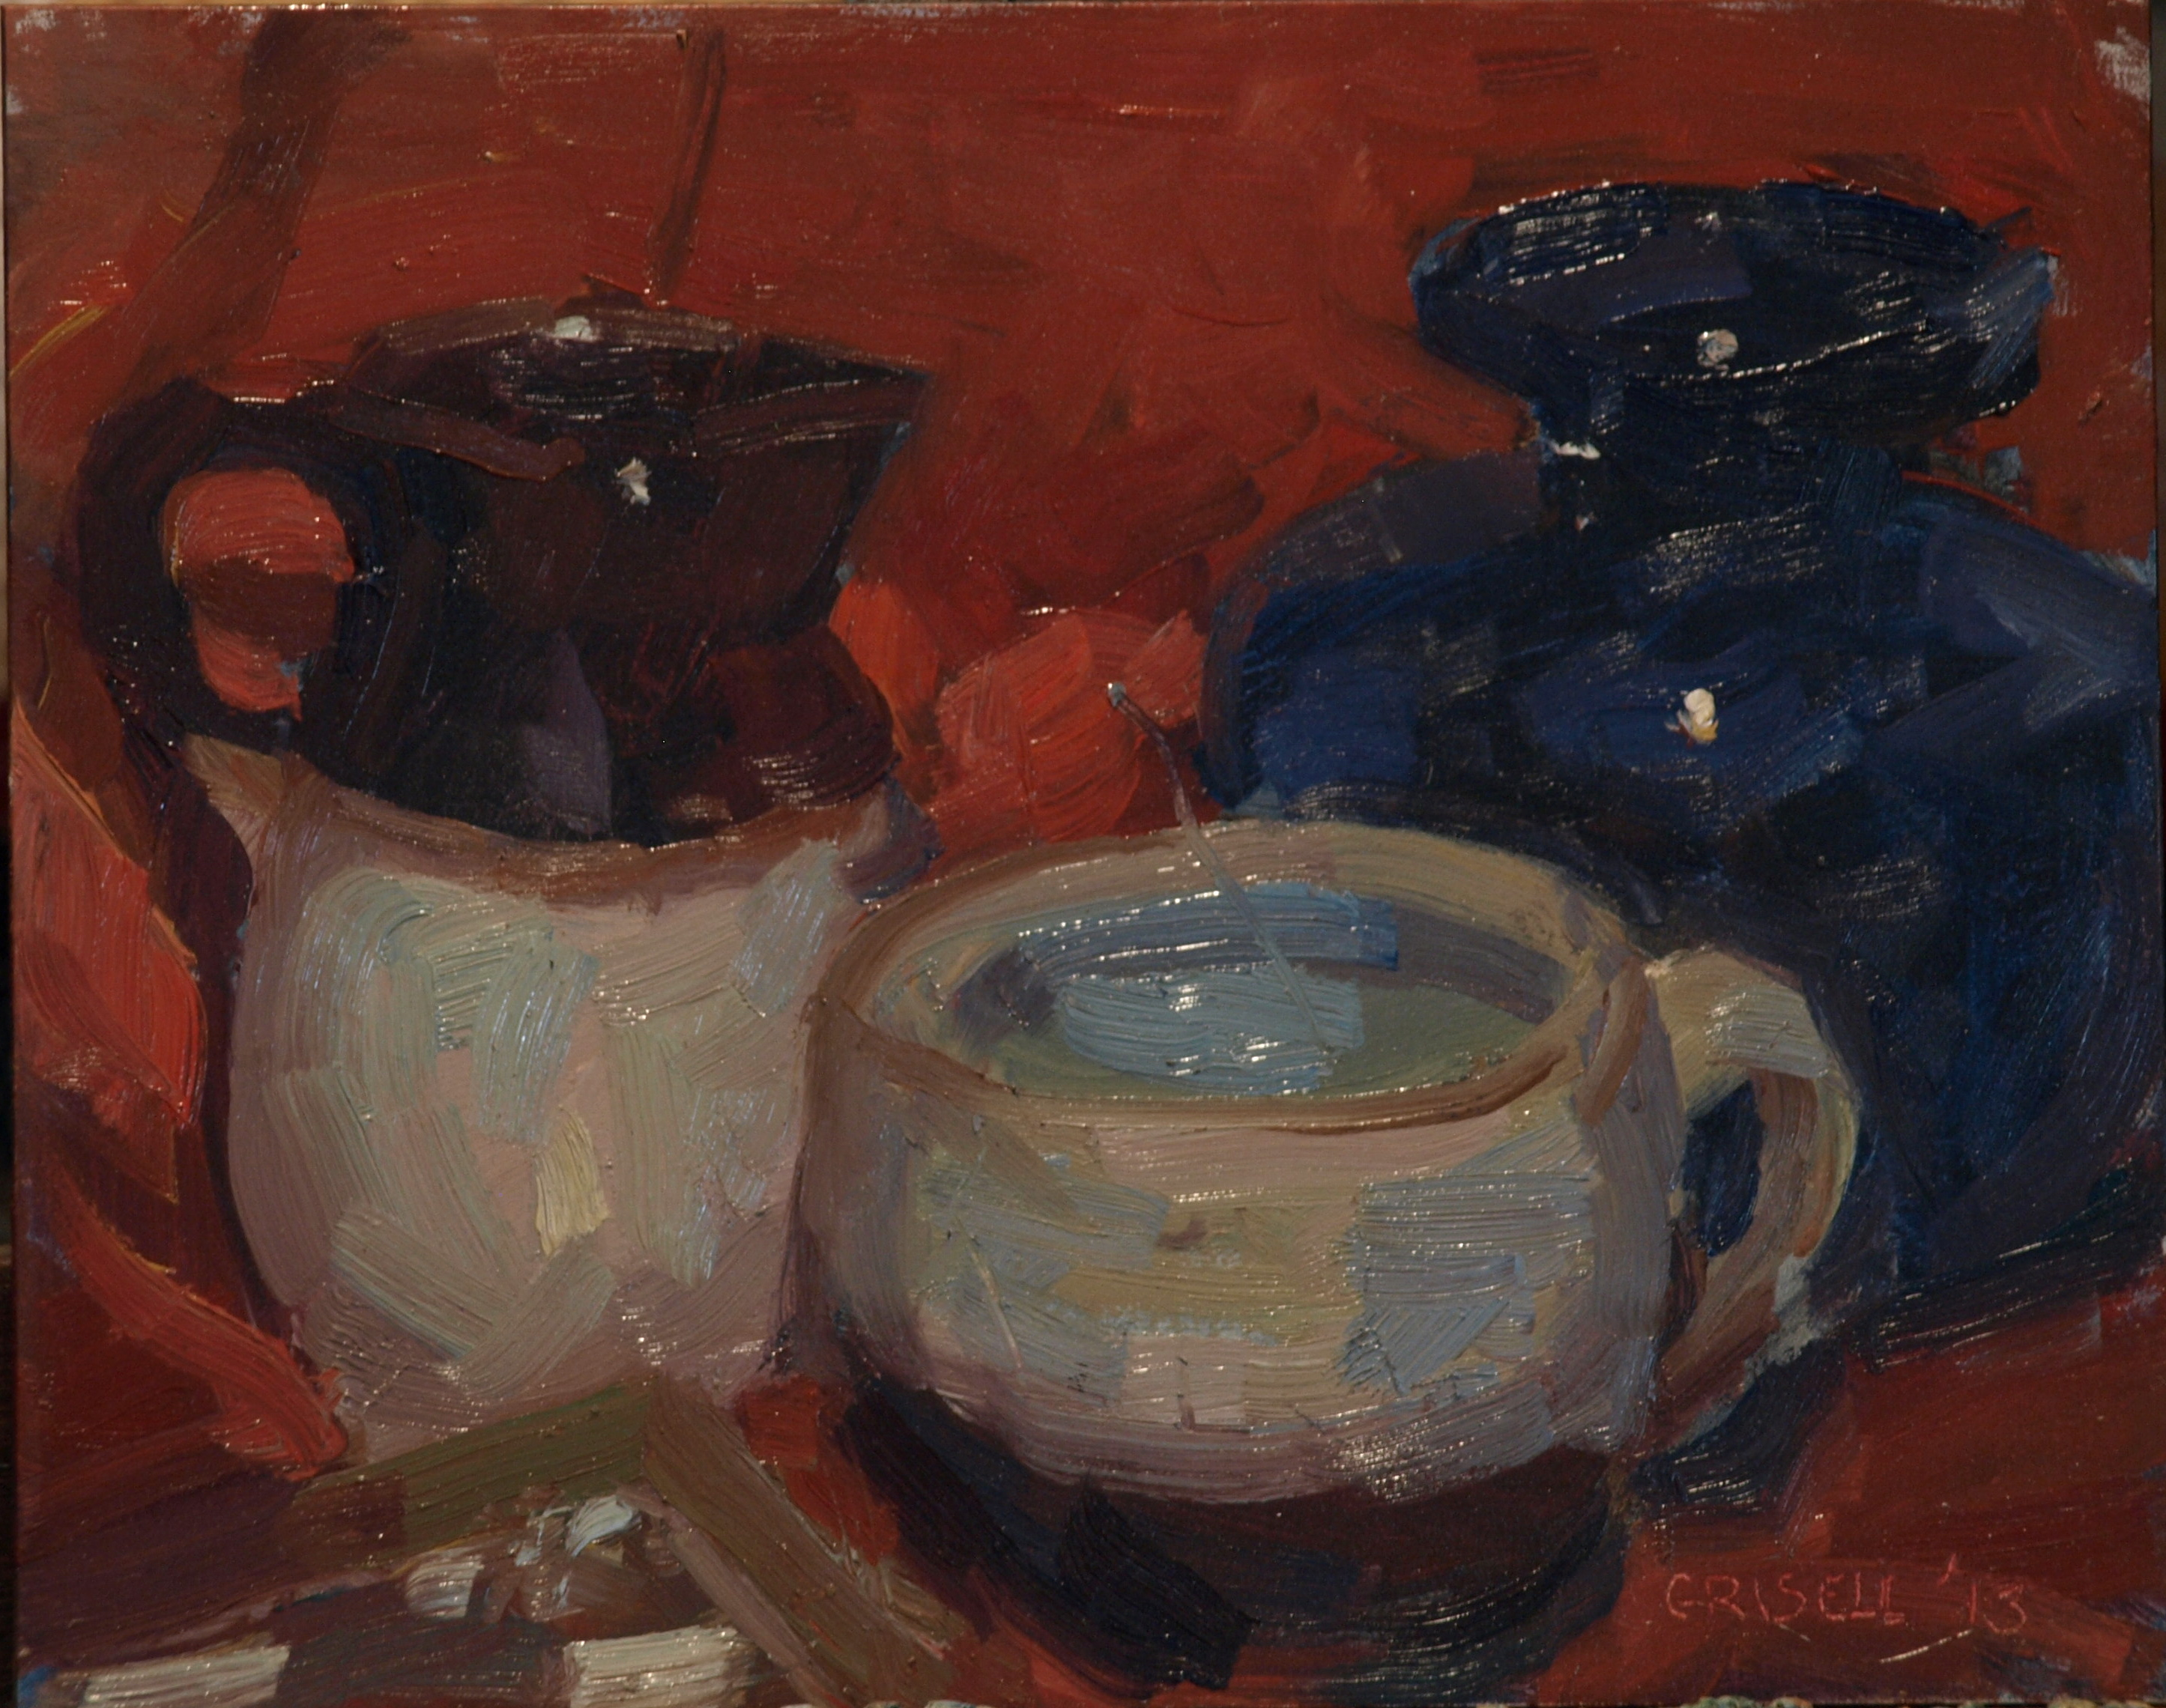 Glass and Clay, Oil on Canvas on Panel, 8 x 10 Inches, by Susan Grisell, $150